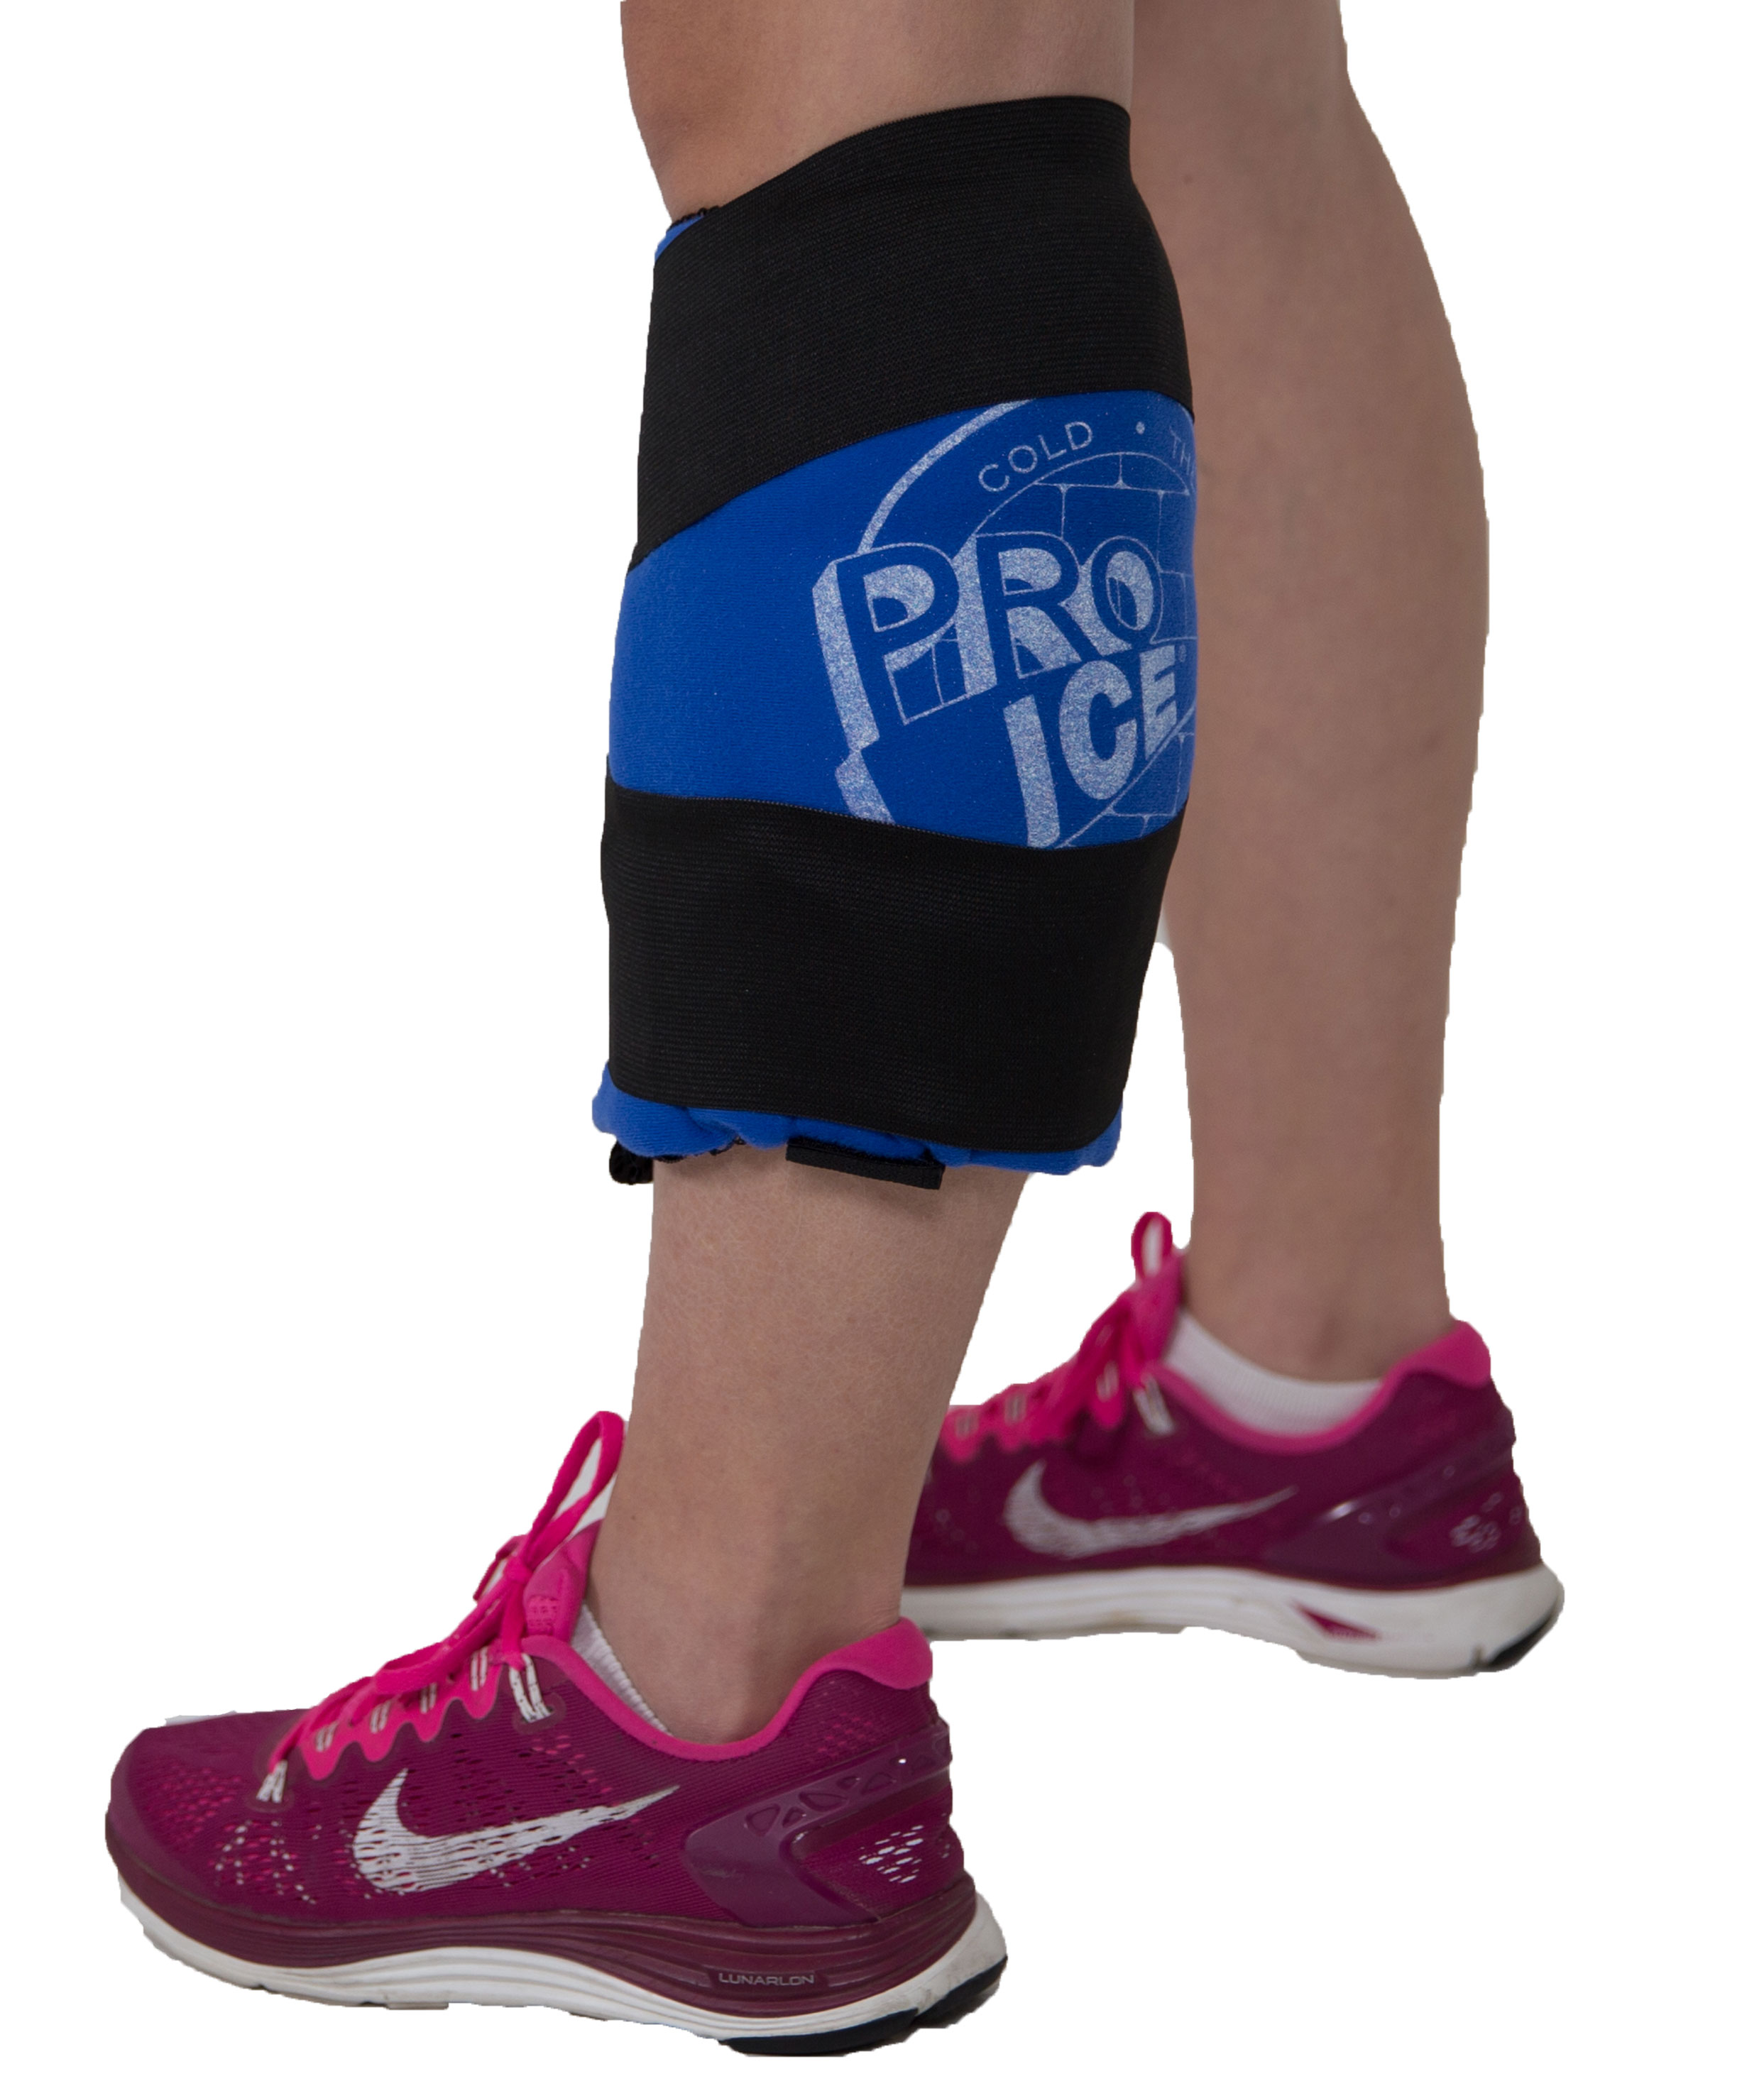 Universal Ice Pack for Calf Pulls and Strains, by Pro Ice pi260